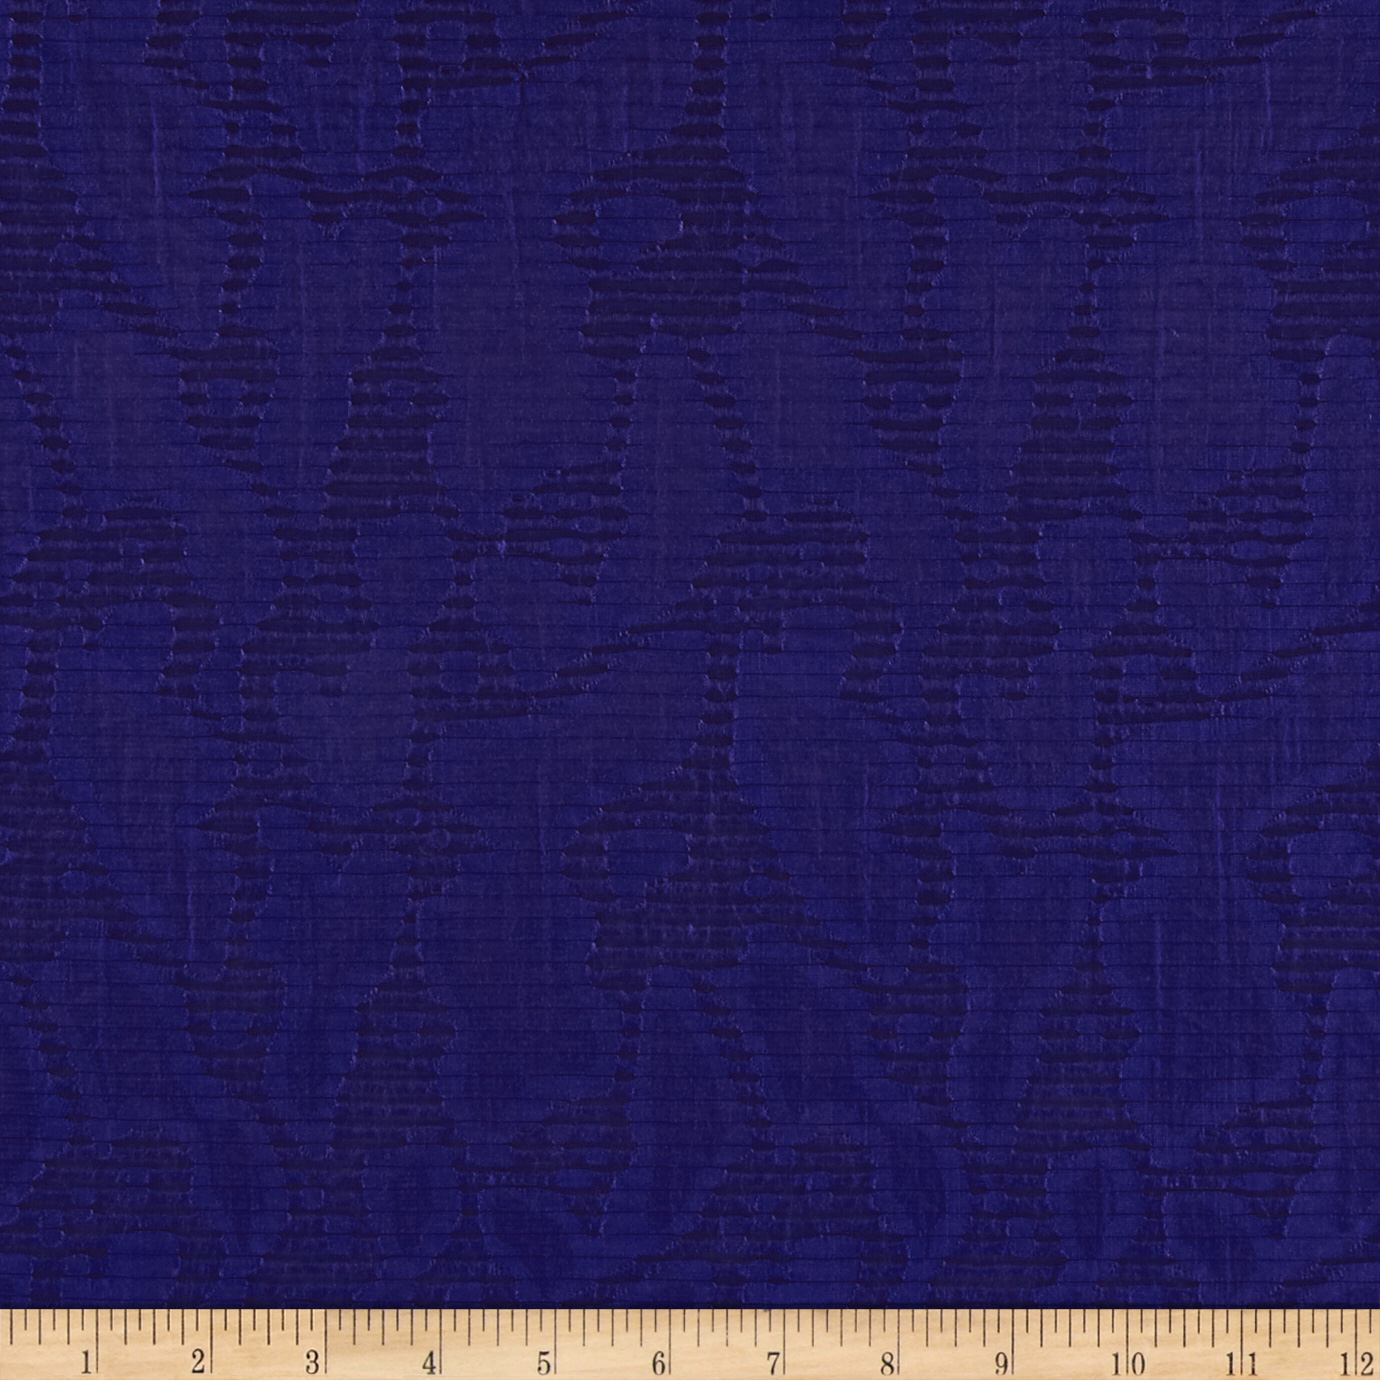 Harlow Jacquard Shirting Royal Blue Fabric